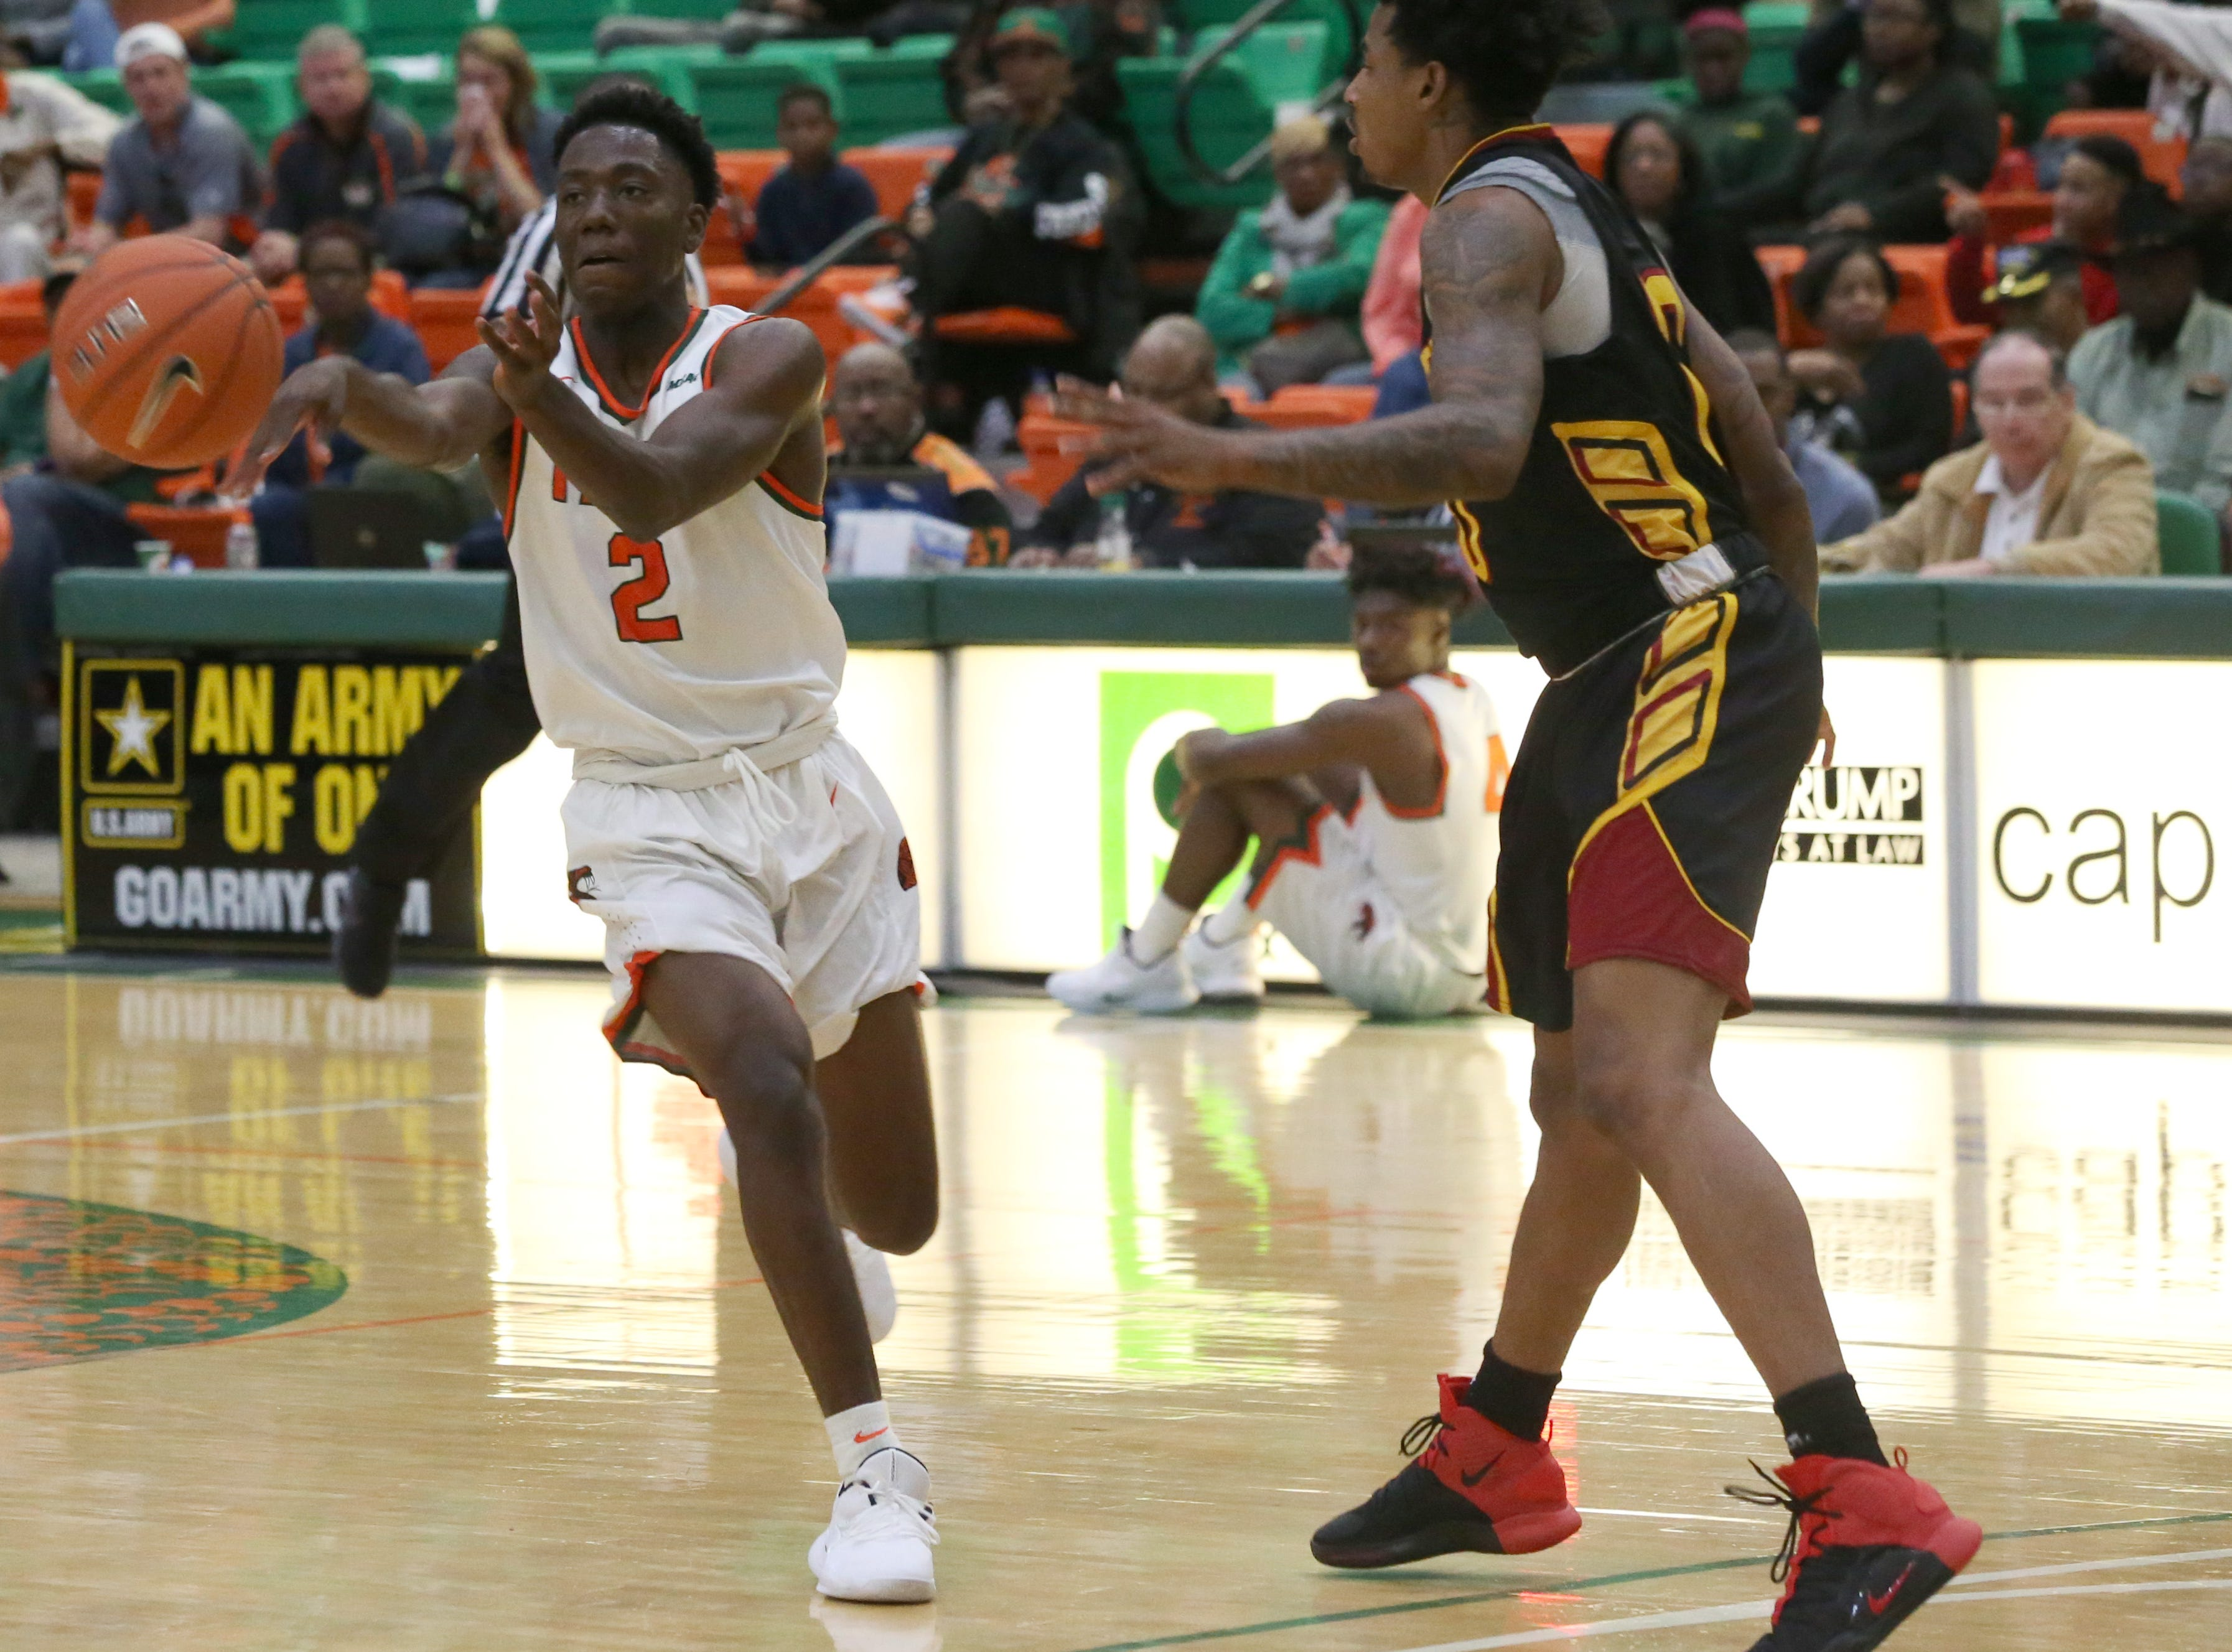 Florida A&M Rattlers guard Kamron Reaves (2) passes to a teammate as the FAMU Rattlers take on the Tuskegee Golden Tigers in their first home game of the season in the Lawson Center, Saturday, Nov. 10, 2018.